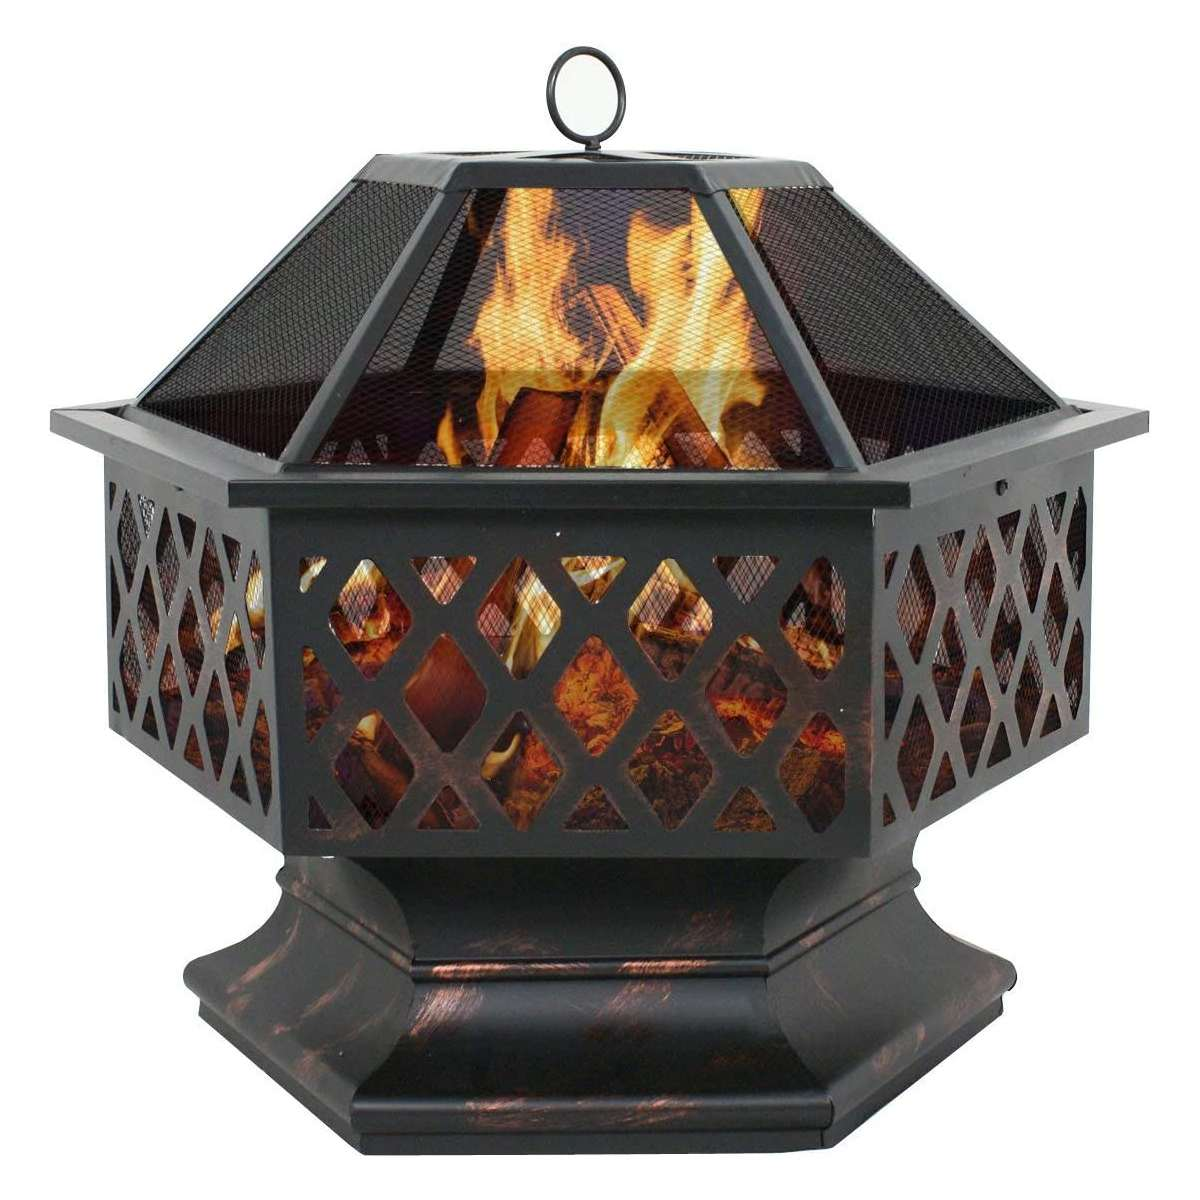 24Inch Portable Wood Burning Barbecue Fire Pits Hexagonal Brazier for Backyard Poolside Steel Black Courtyard Bonfire Fire Pit